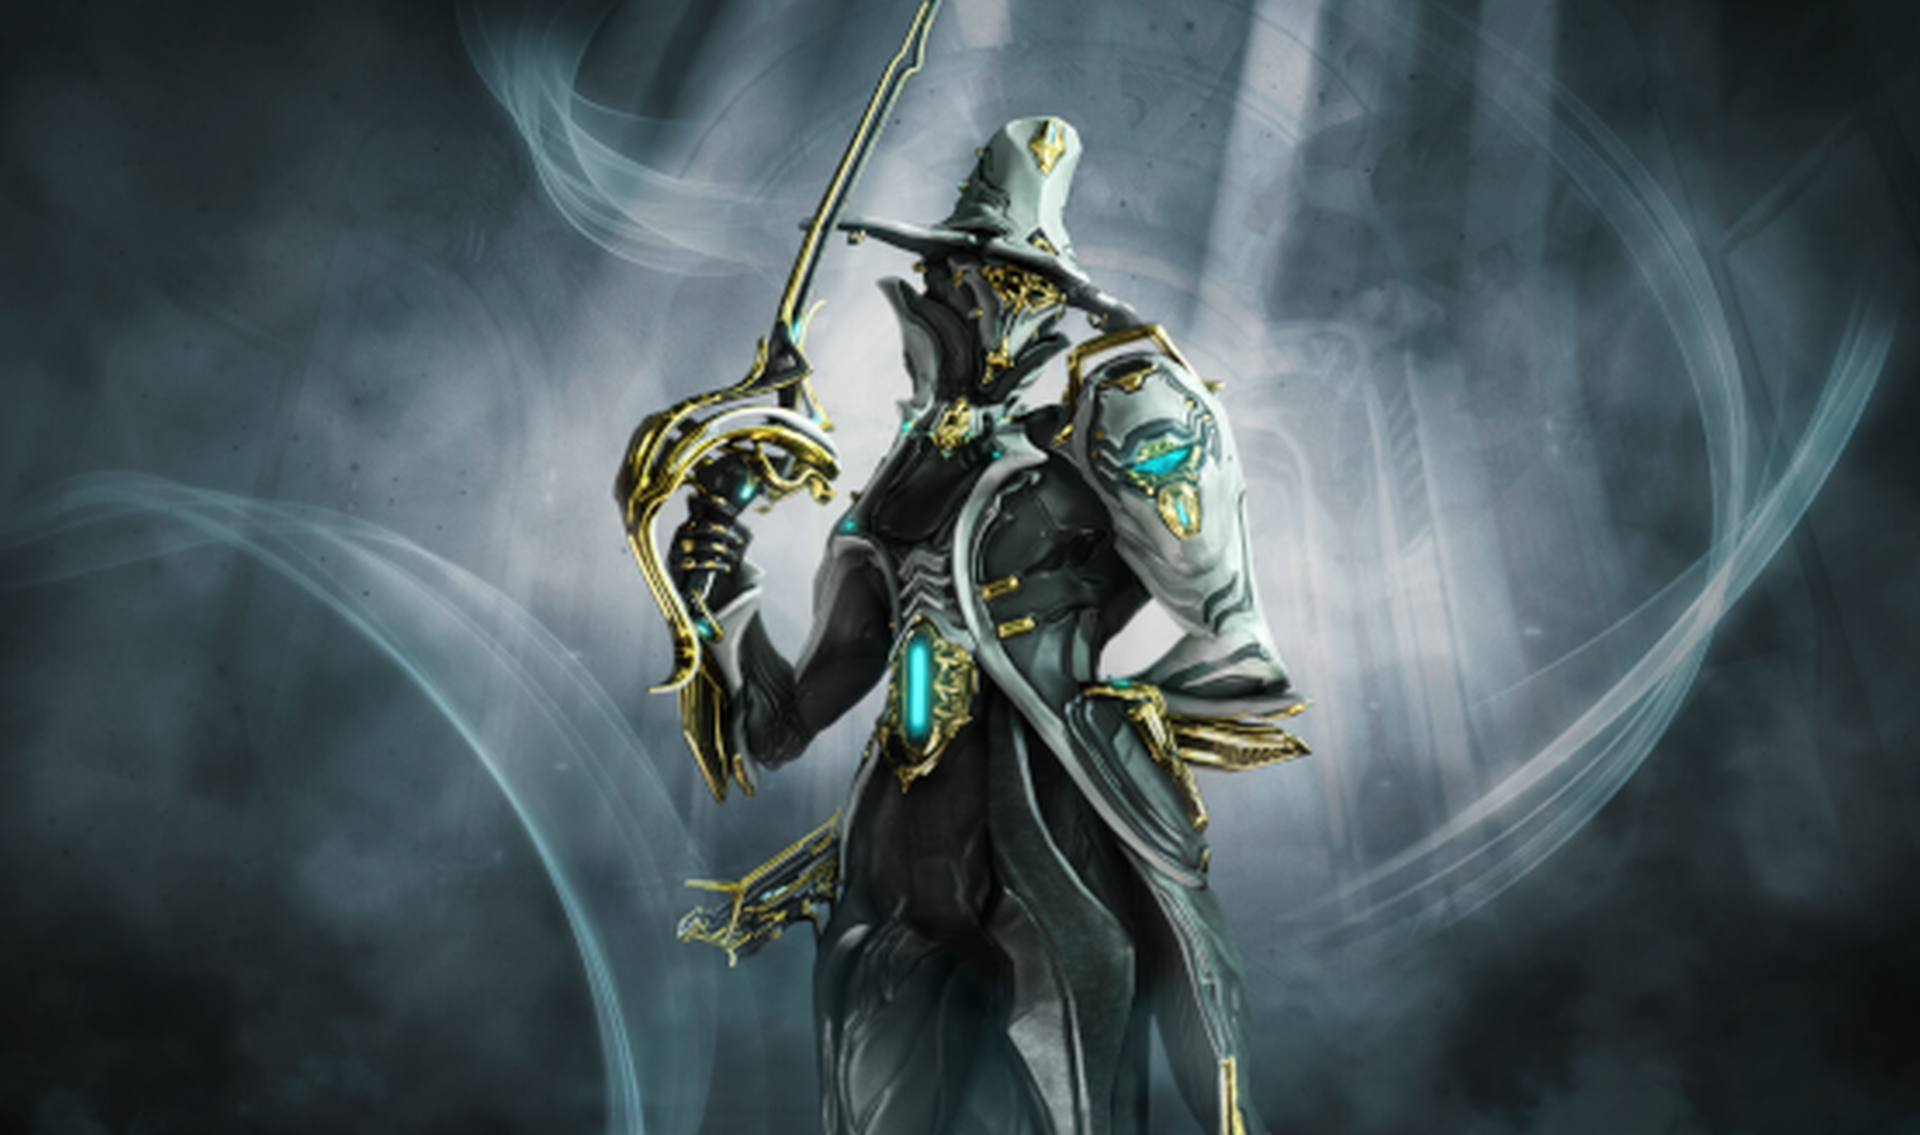 TennoCon 2018: Warframe Fortuna Gameplay and More Info on